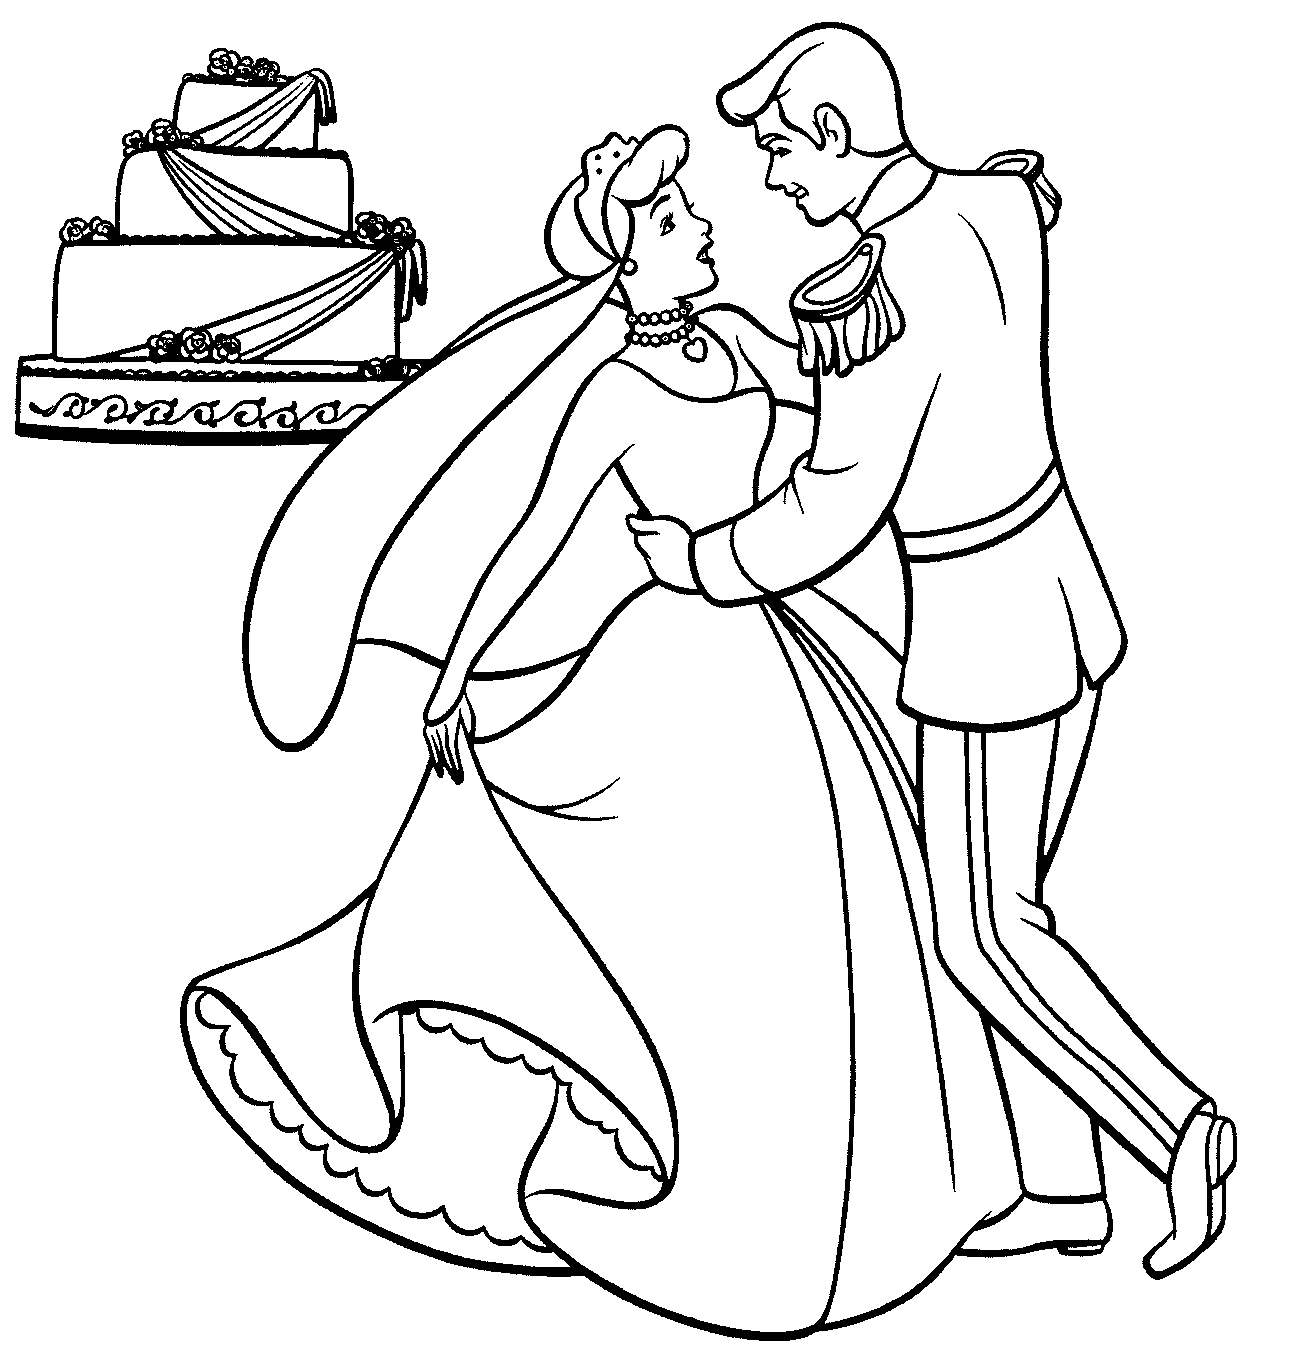 cinderella coloring pages to print 30 free printable cinderella coloring pages print to cinderella coloring pages